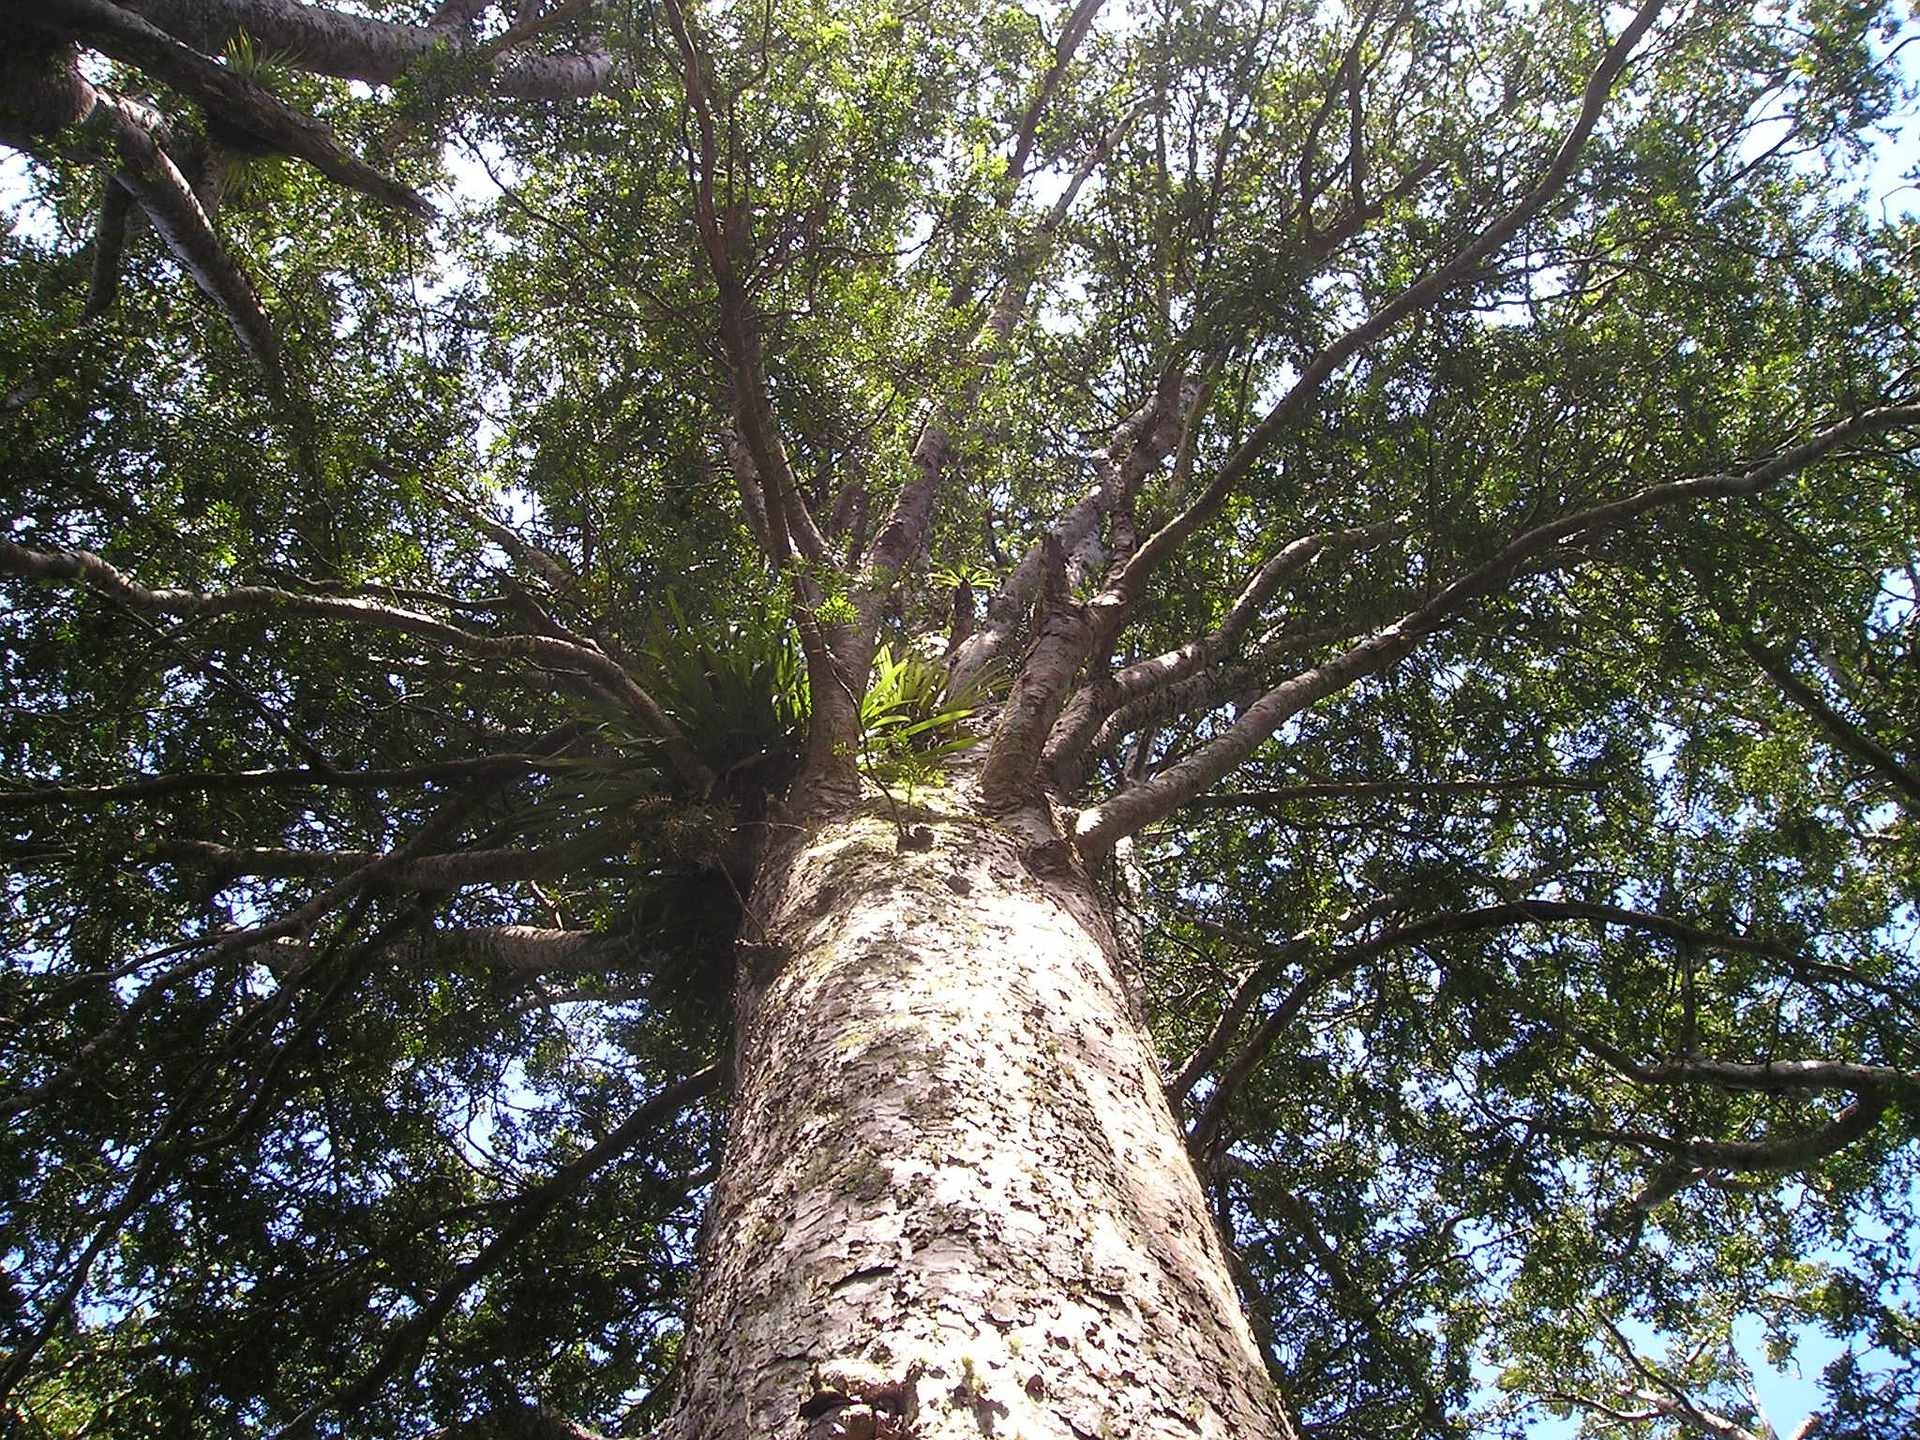 A healthy Kauri tree. Photo credit: Simon Steinberger from Pixabay